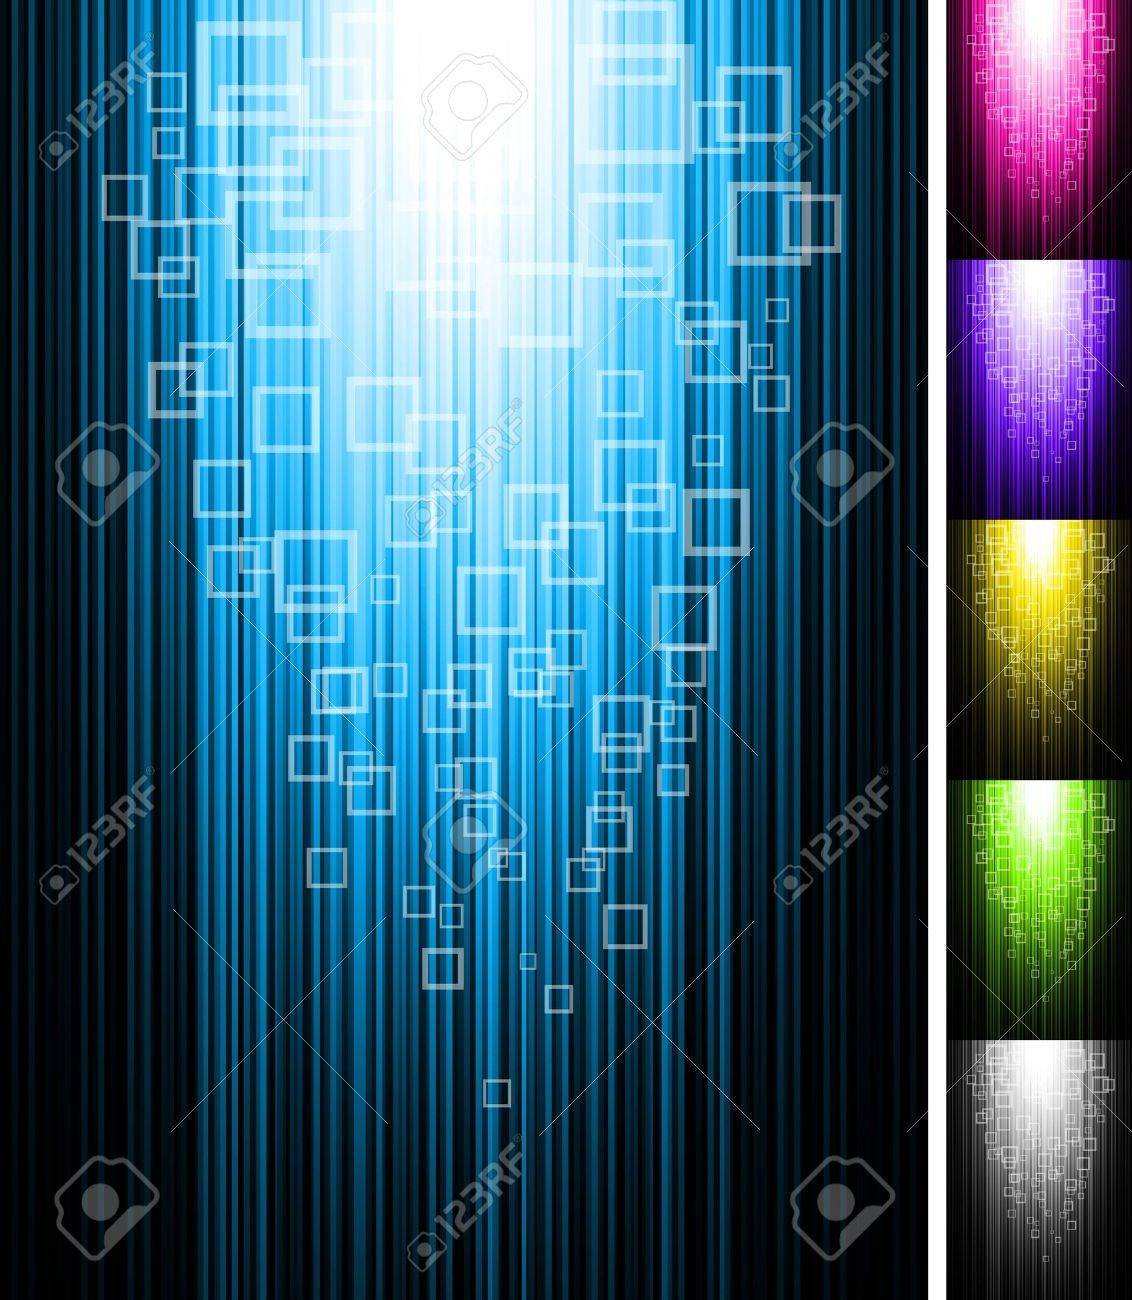 Line and rectangles shine vertical background. Abstract glowing vector illustration. Stock Vector - 11272882